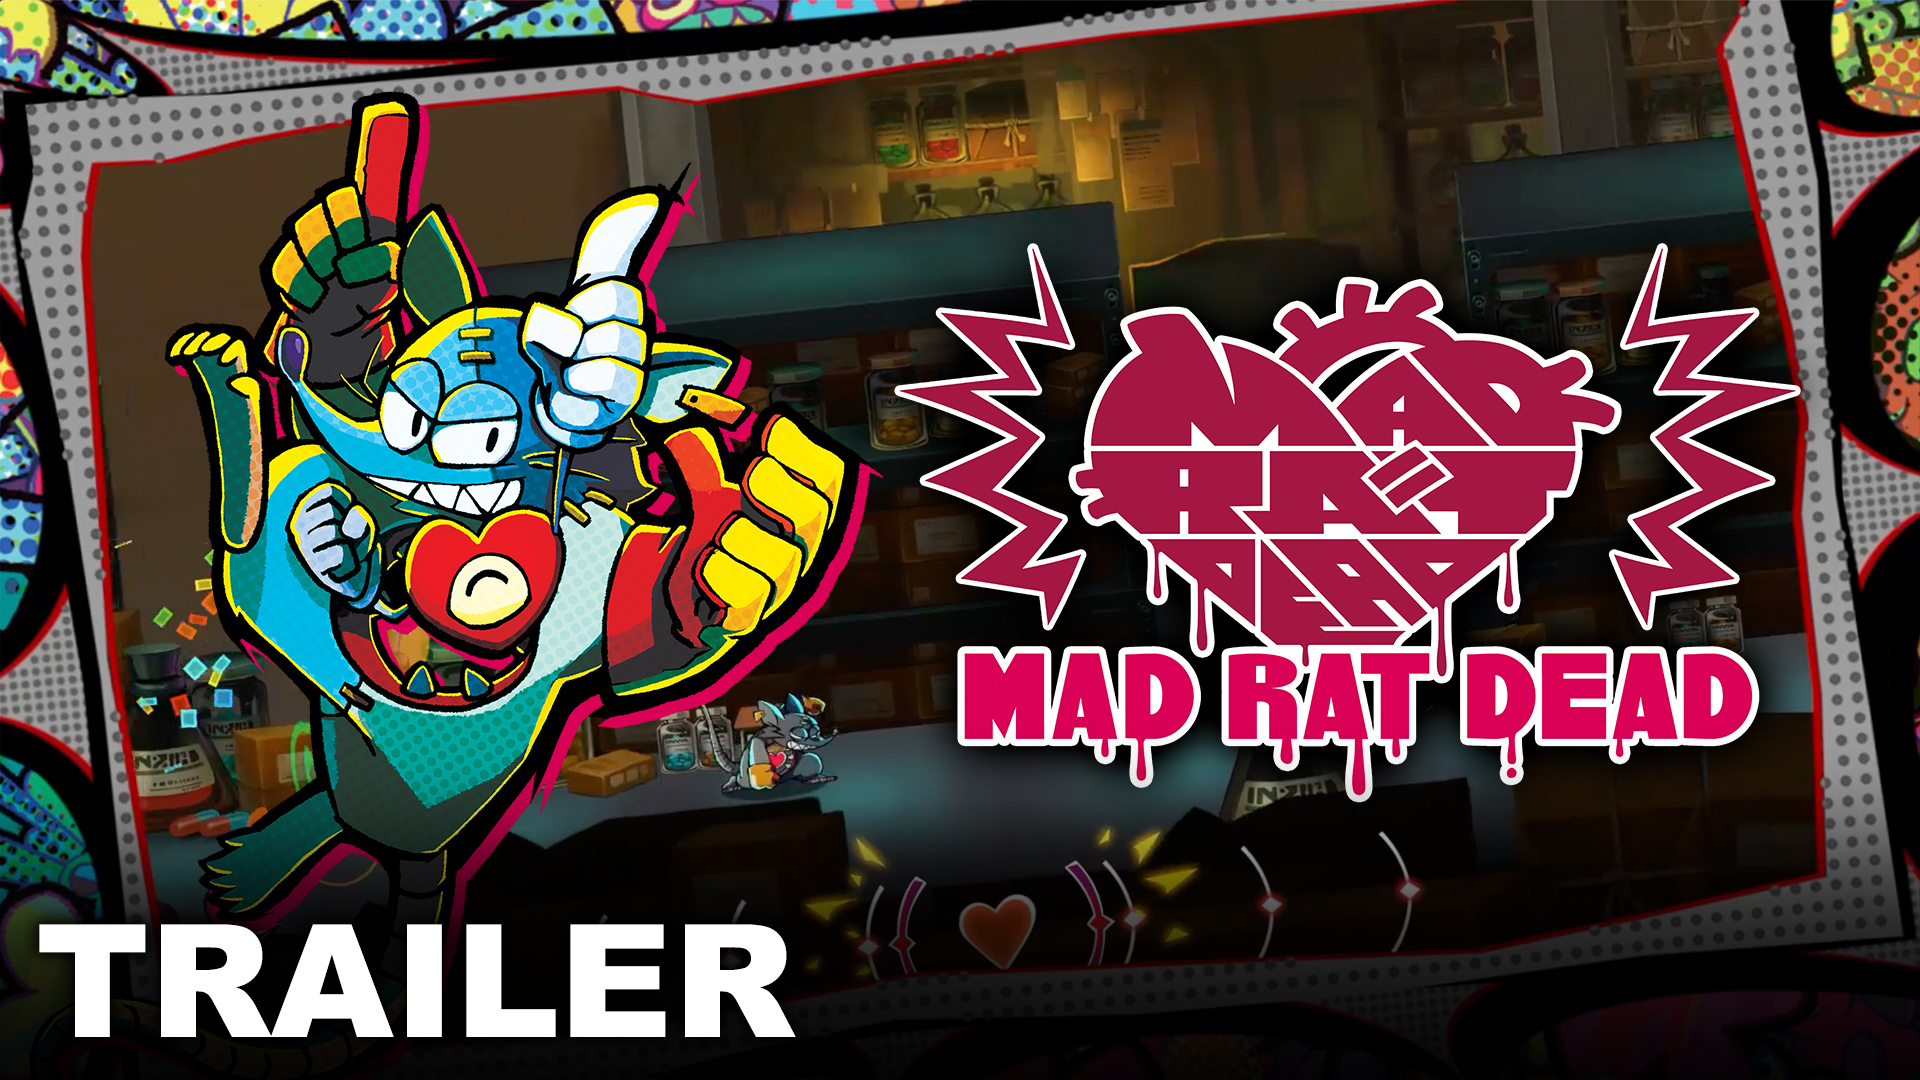 Mad Rat Dead drops the beat in new gameplay trailer!